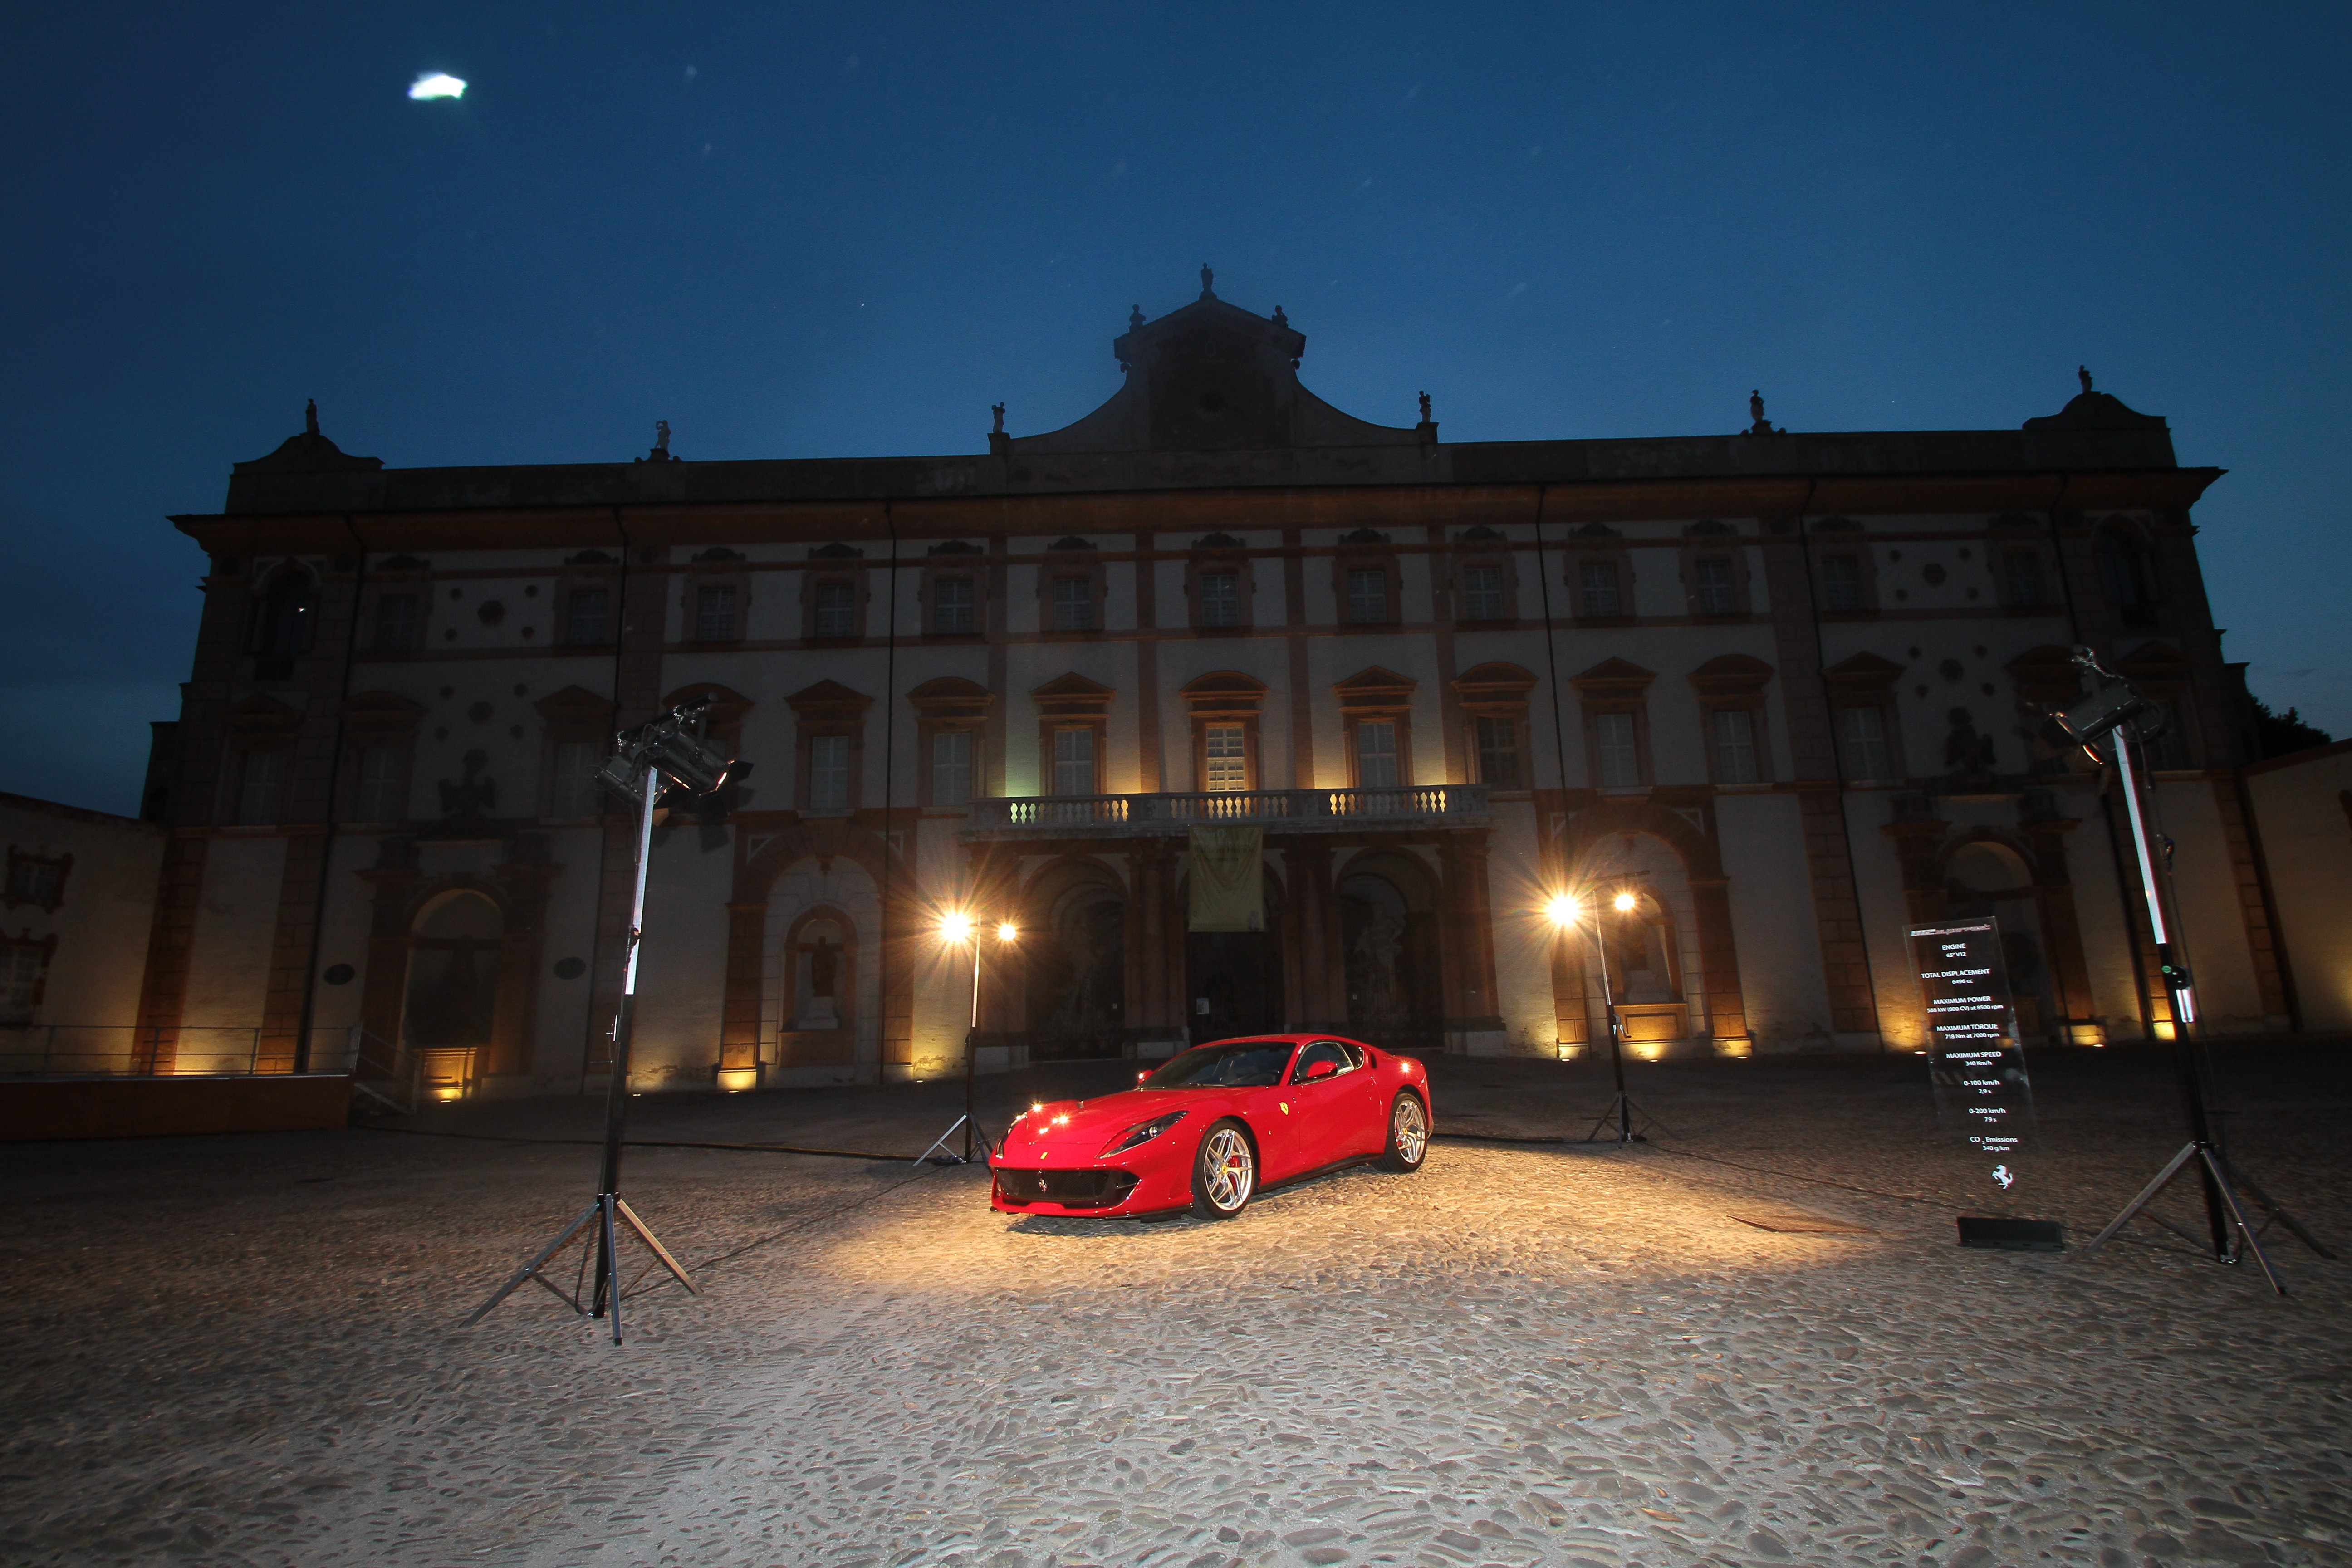 812 FAST IN PIAZZALE ROSA